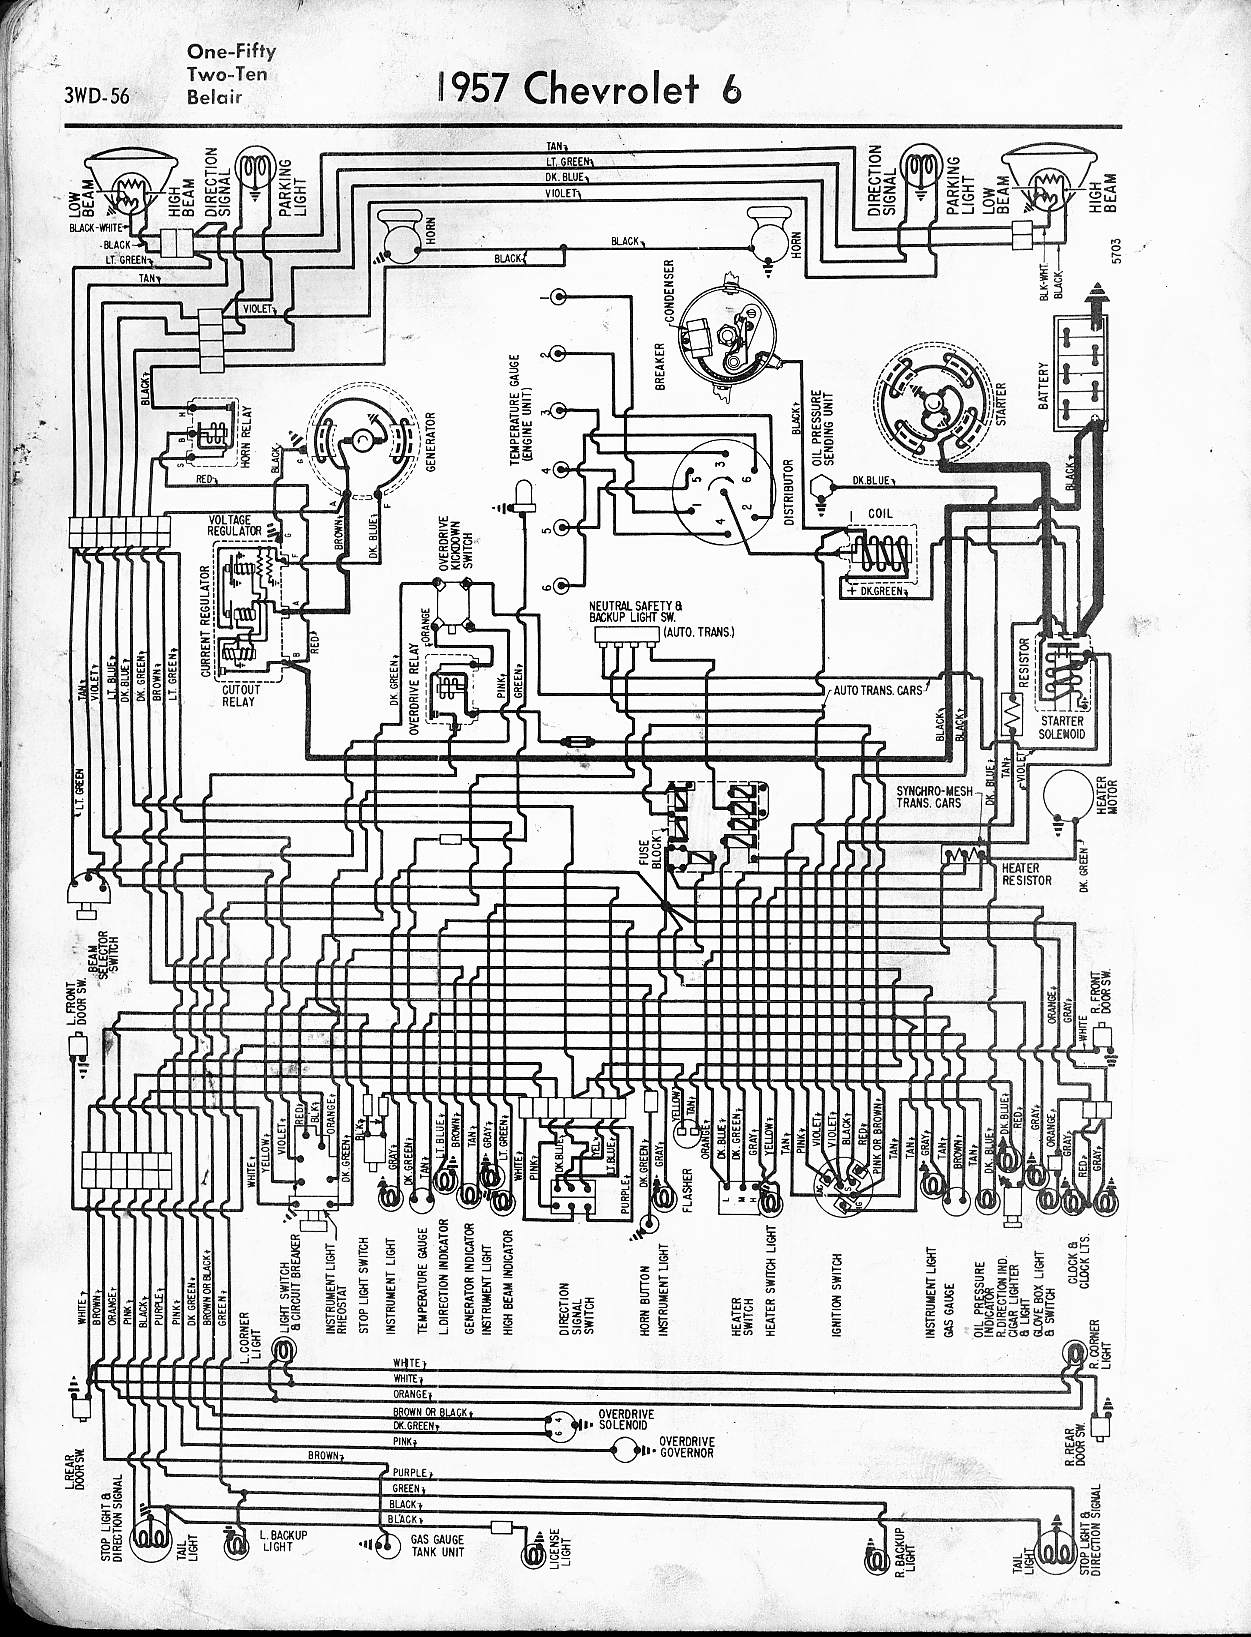 underdash wiring and heater blower help [archive] - trifive, Wiring diagram